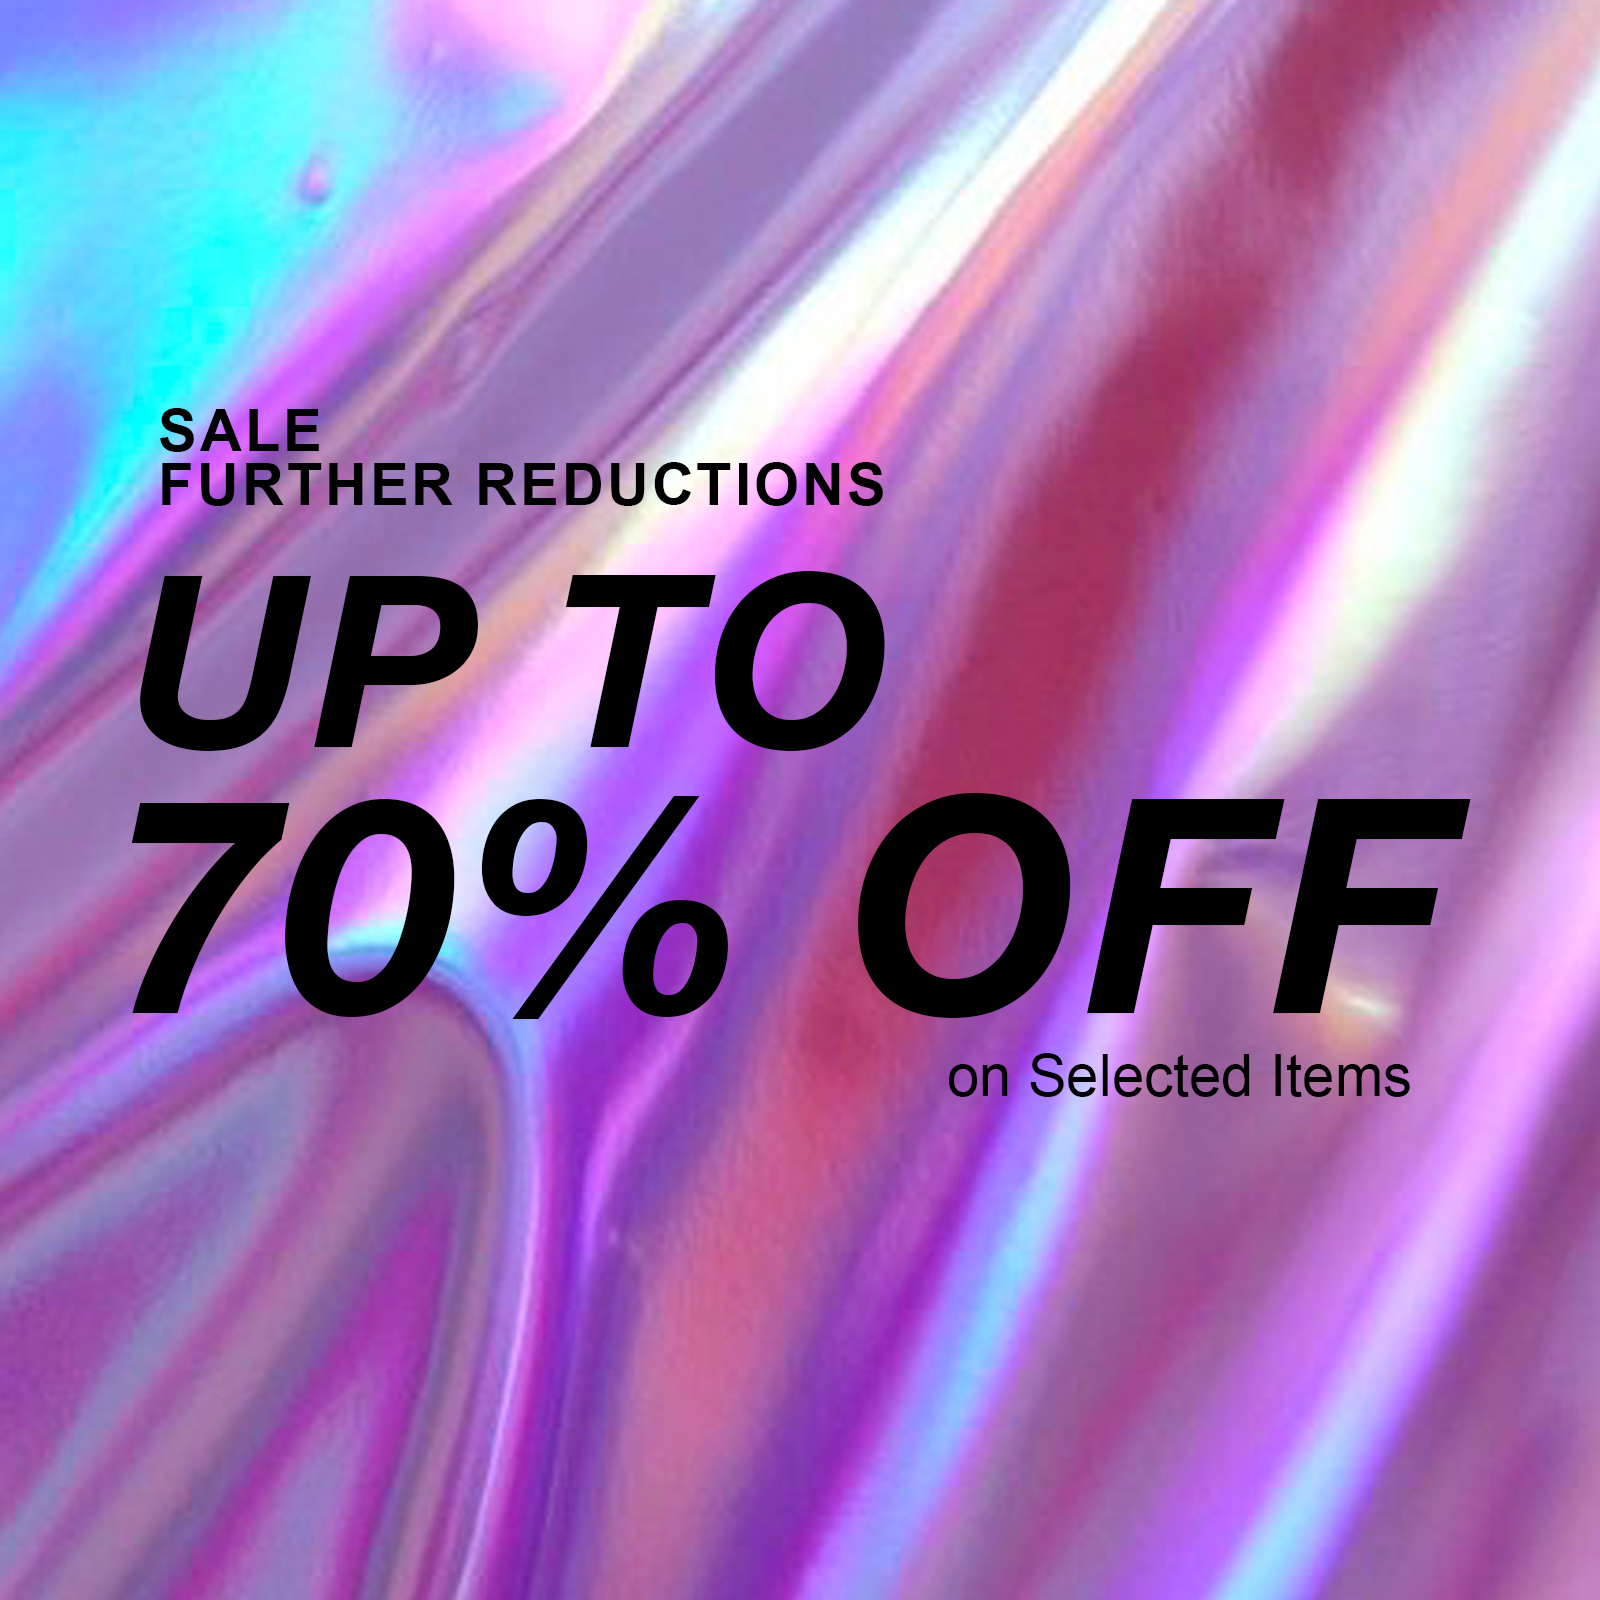 70% OFF ON SELECTED ITEMS